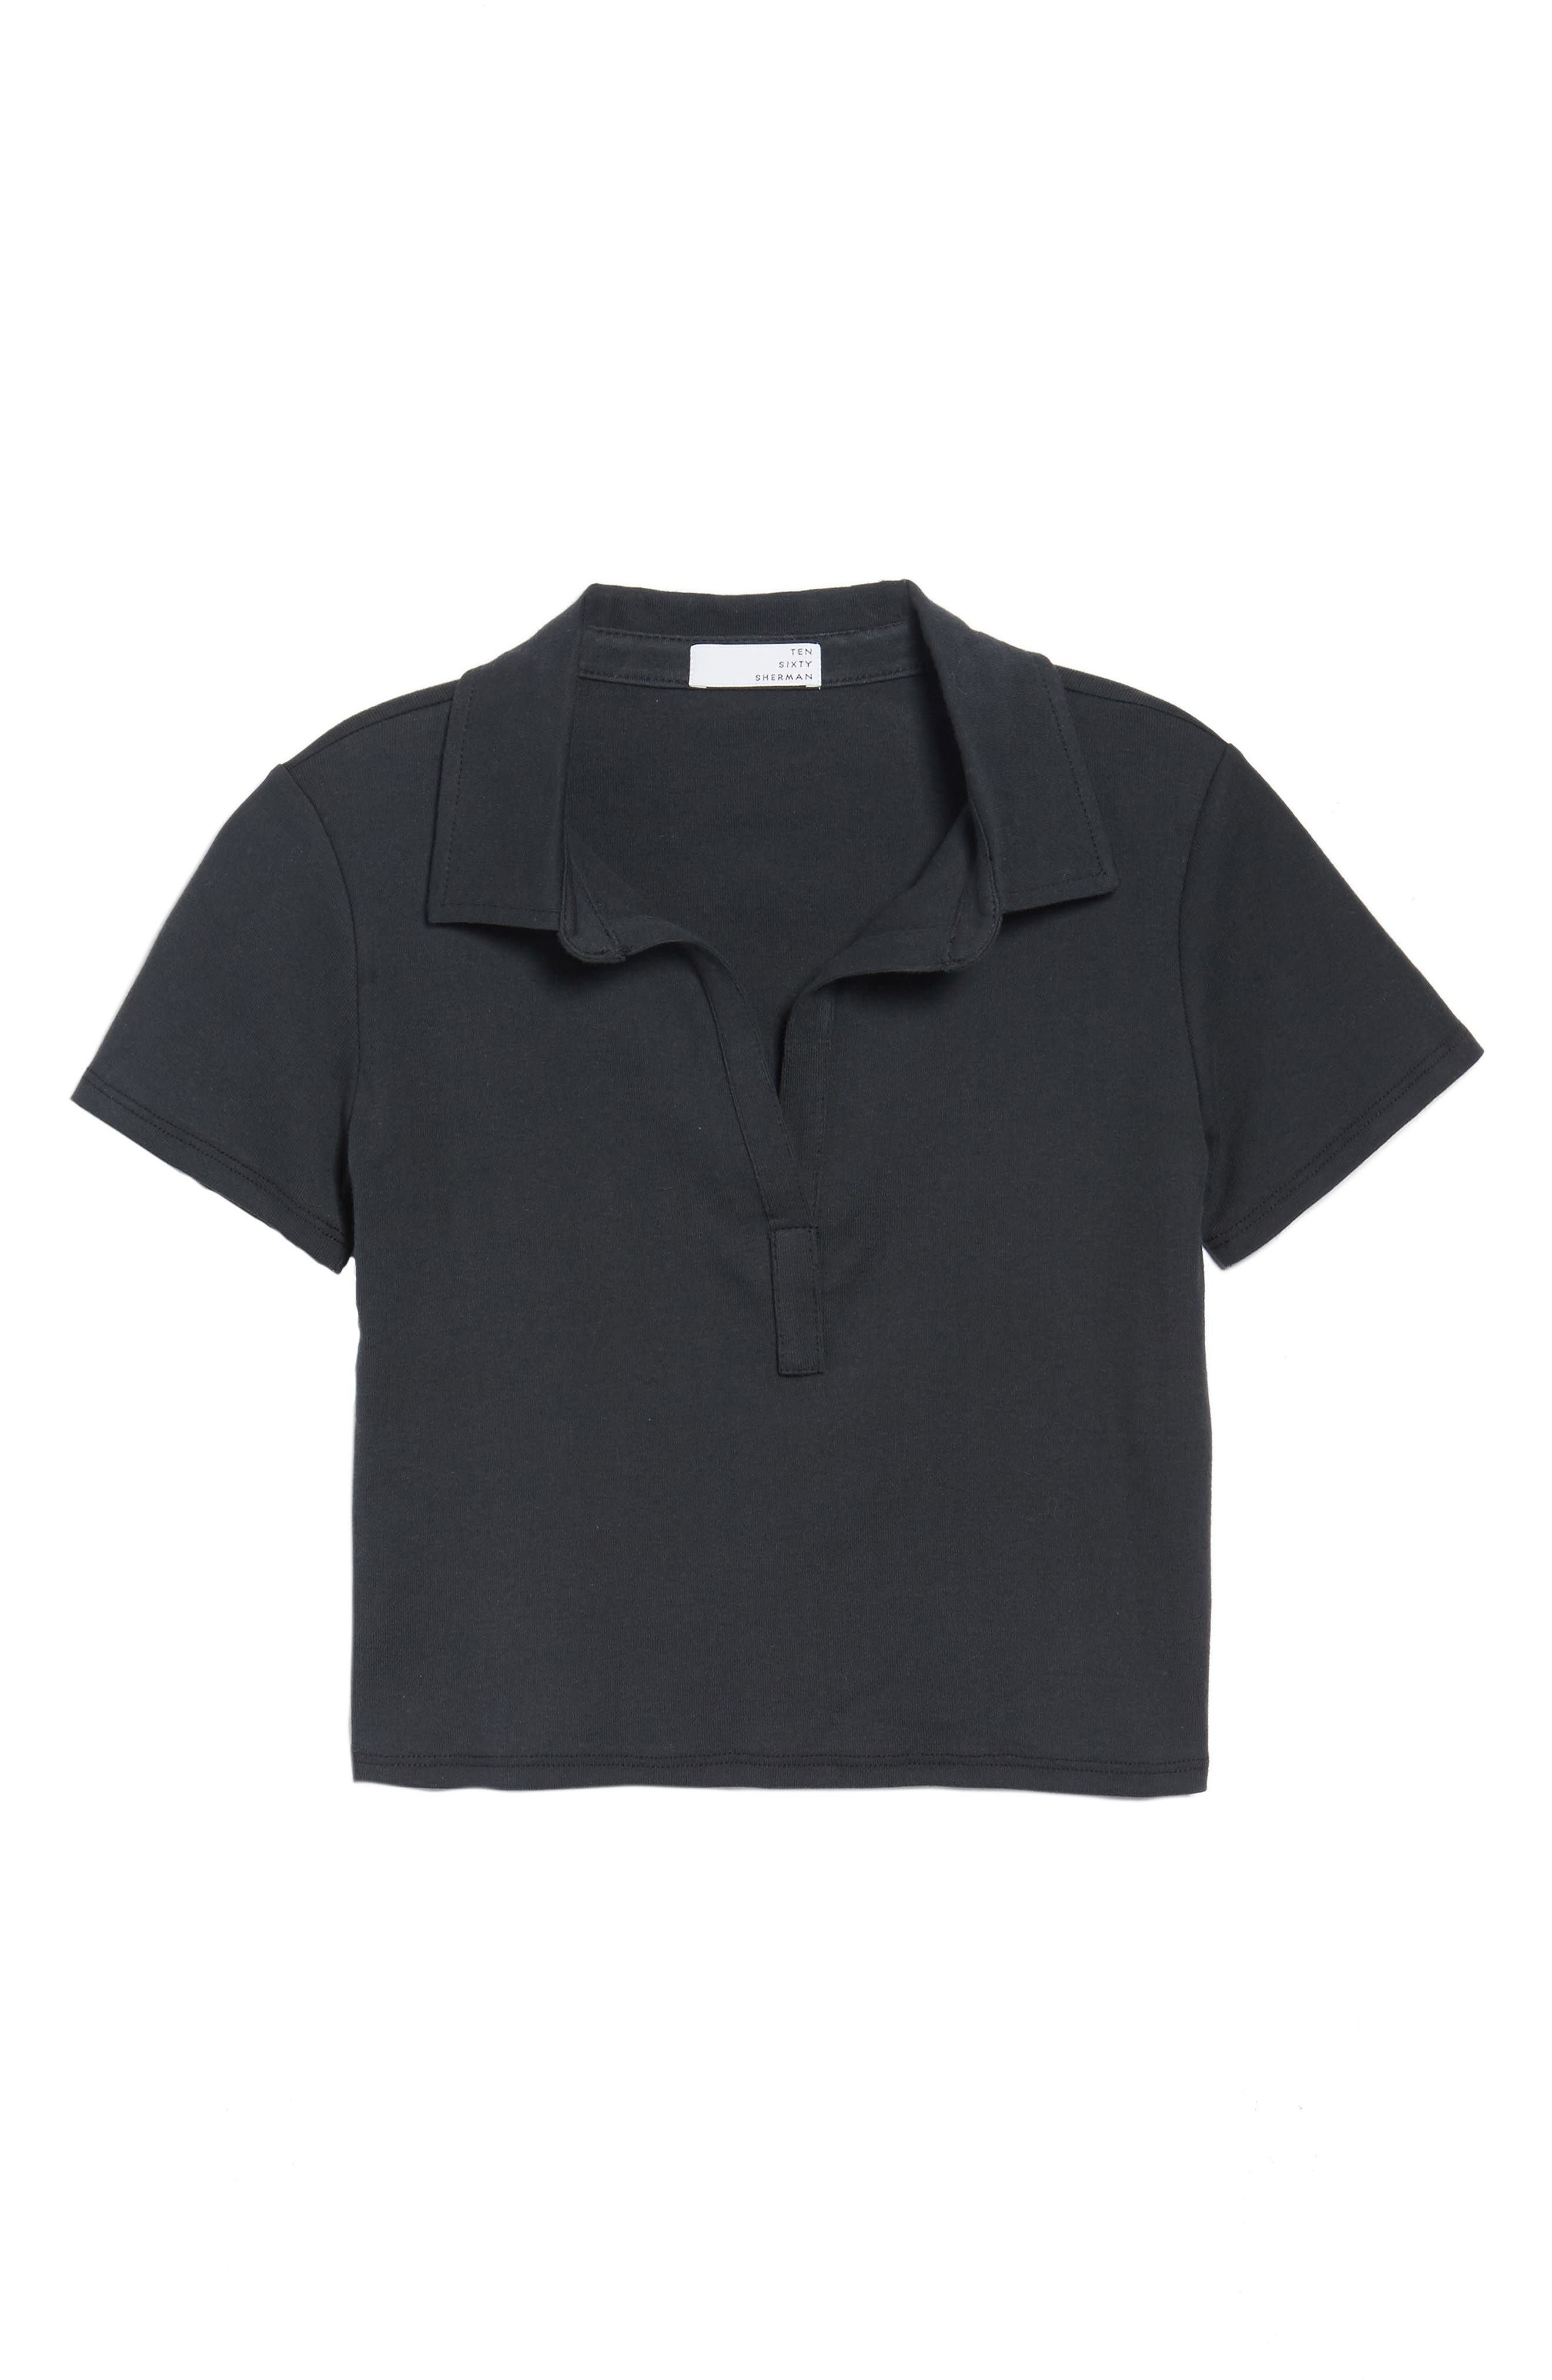 Crop Polo,                             Alternate thumbnail 6, color,                             Black Onyx